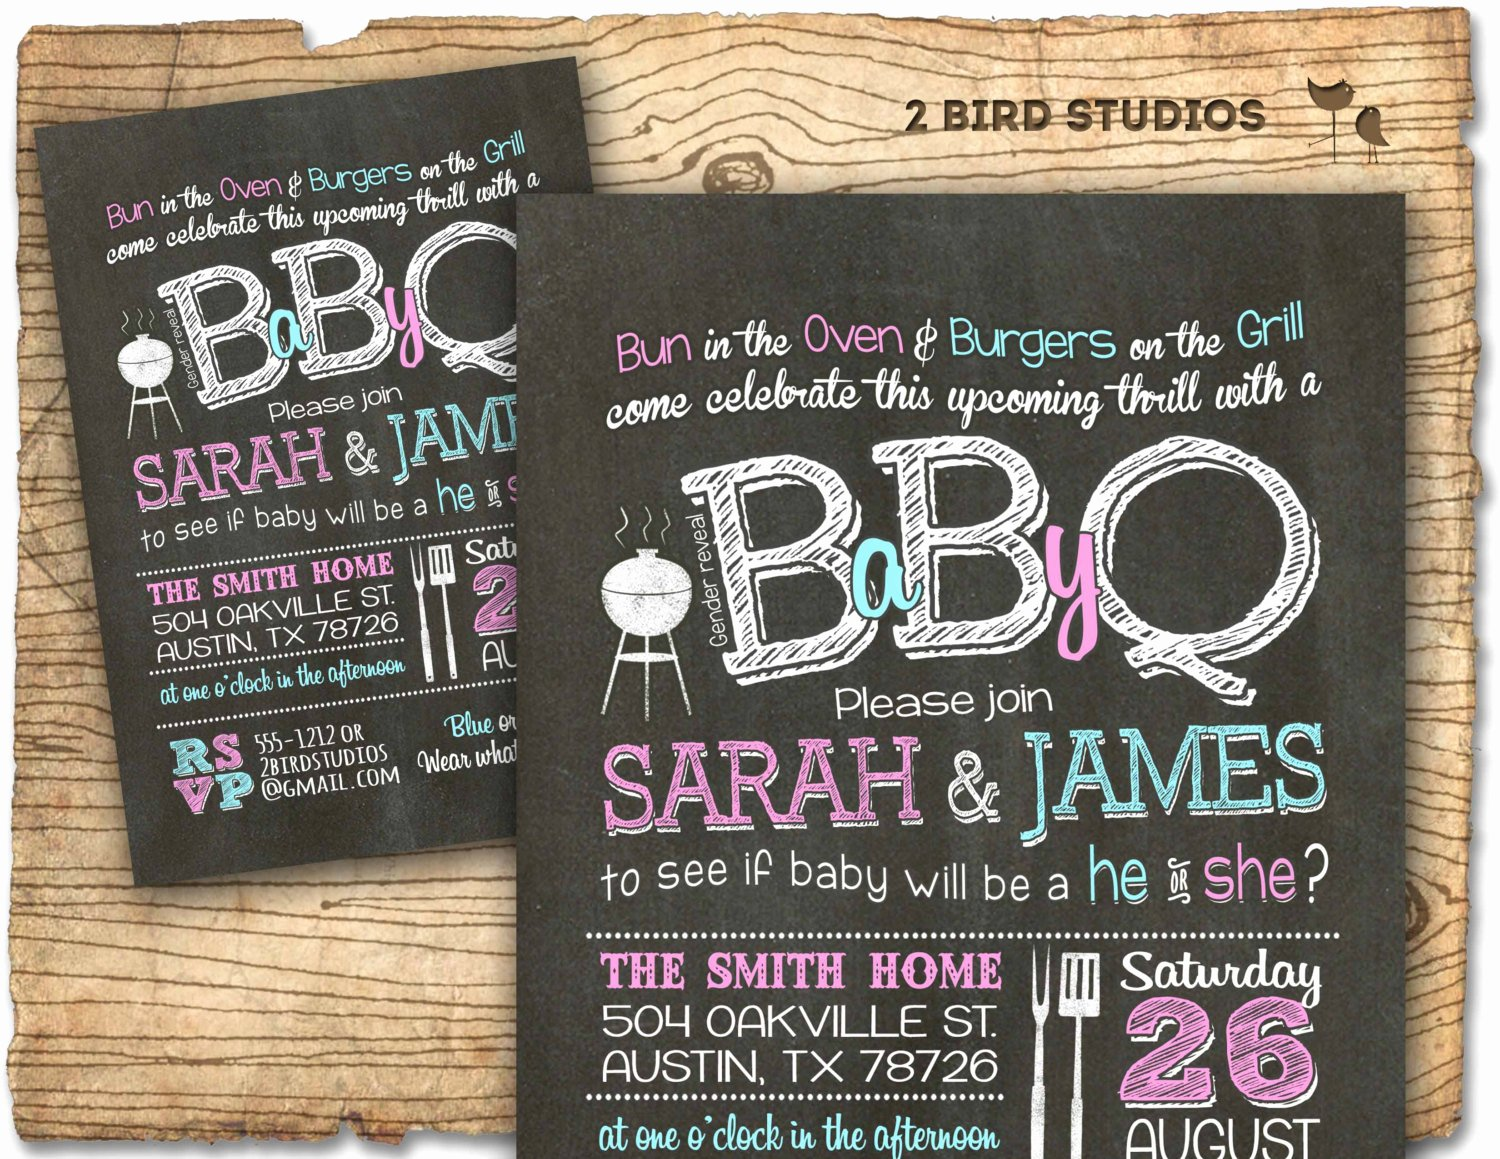 Gender Reveal Bbq Invitations Lovely Bbq Gender Reveal Invitation Babyq Gender Reveal He or She